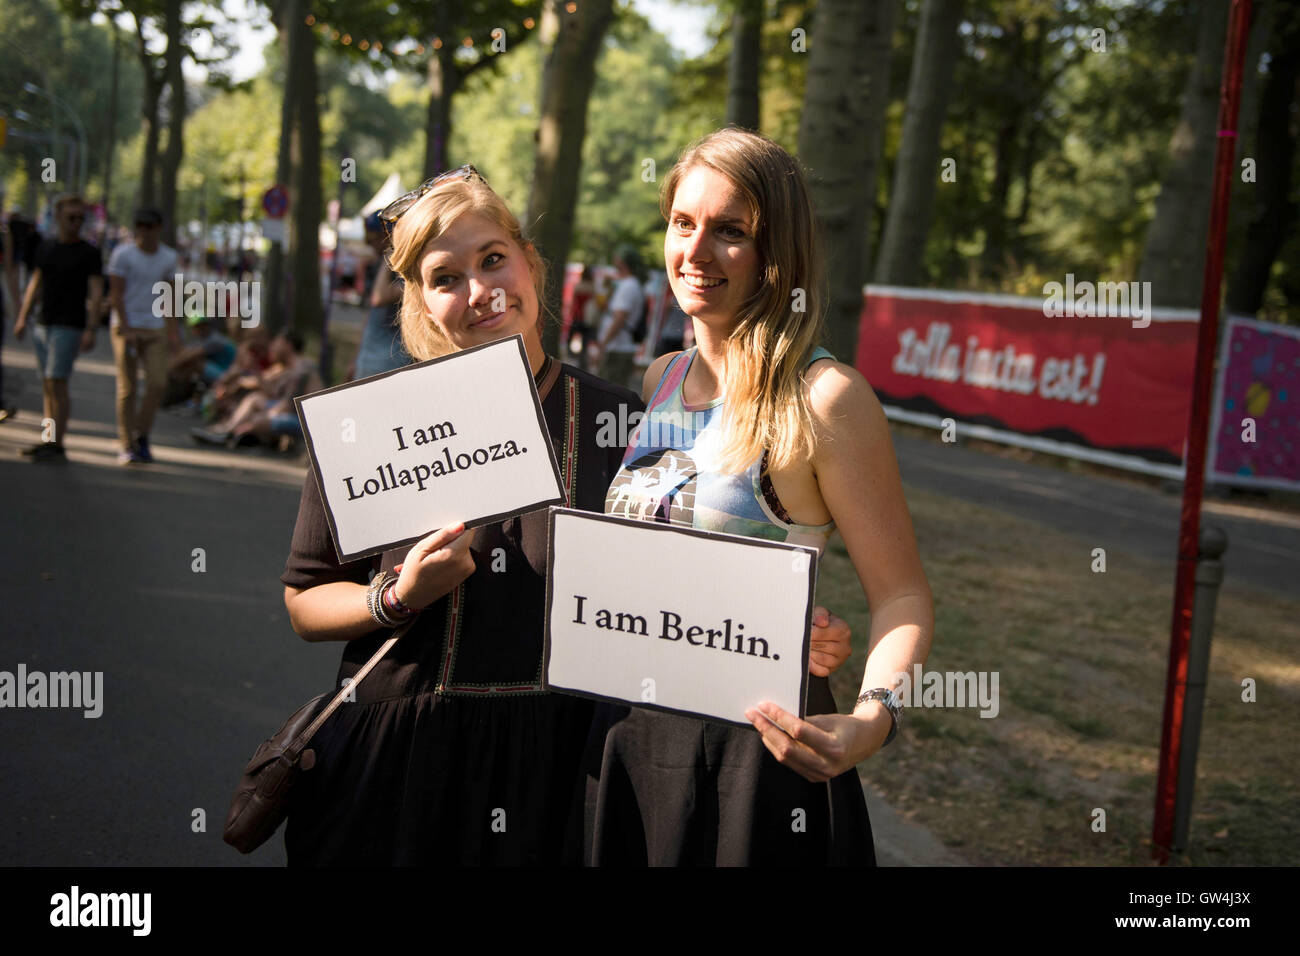 Two visitors holding up signs reading 'I am Lollapalooza' and 'I am Berlin' at the Lollapalooza - Stock Image